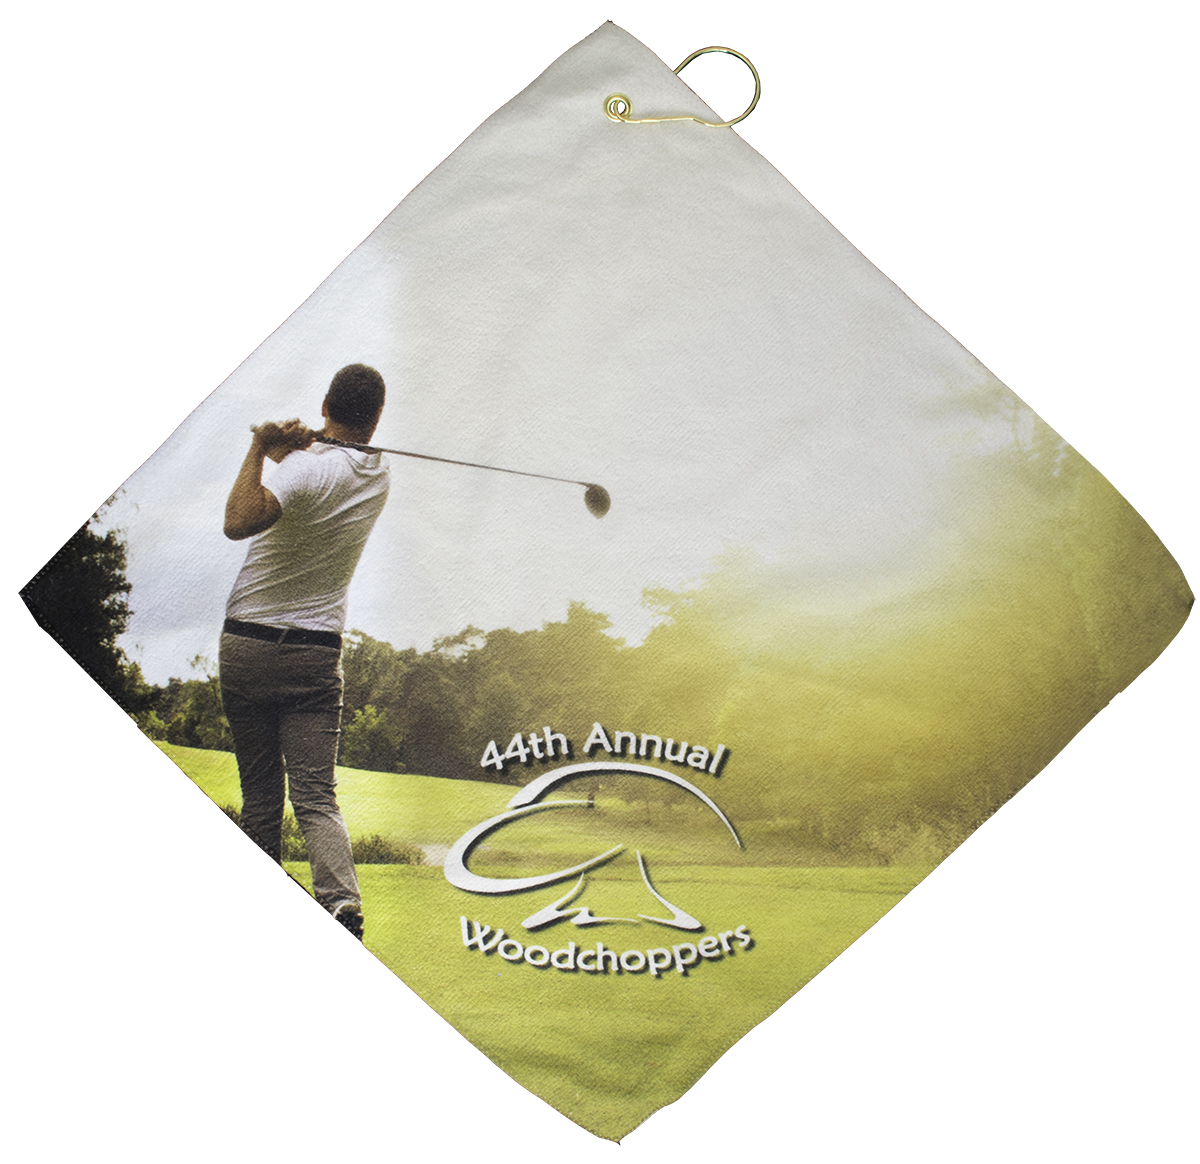 Ball Pro Promotional Group Microfiber Golf Towel For Dye Sublimated Full Bleed